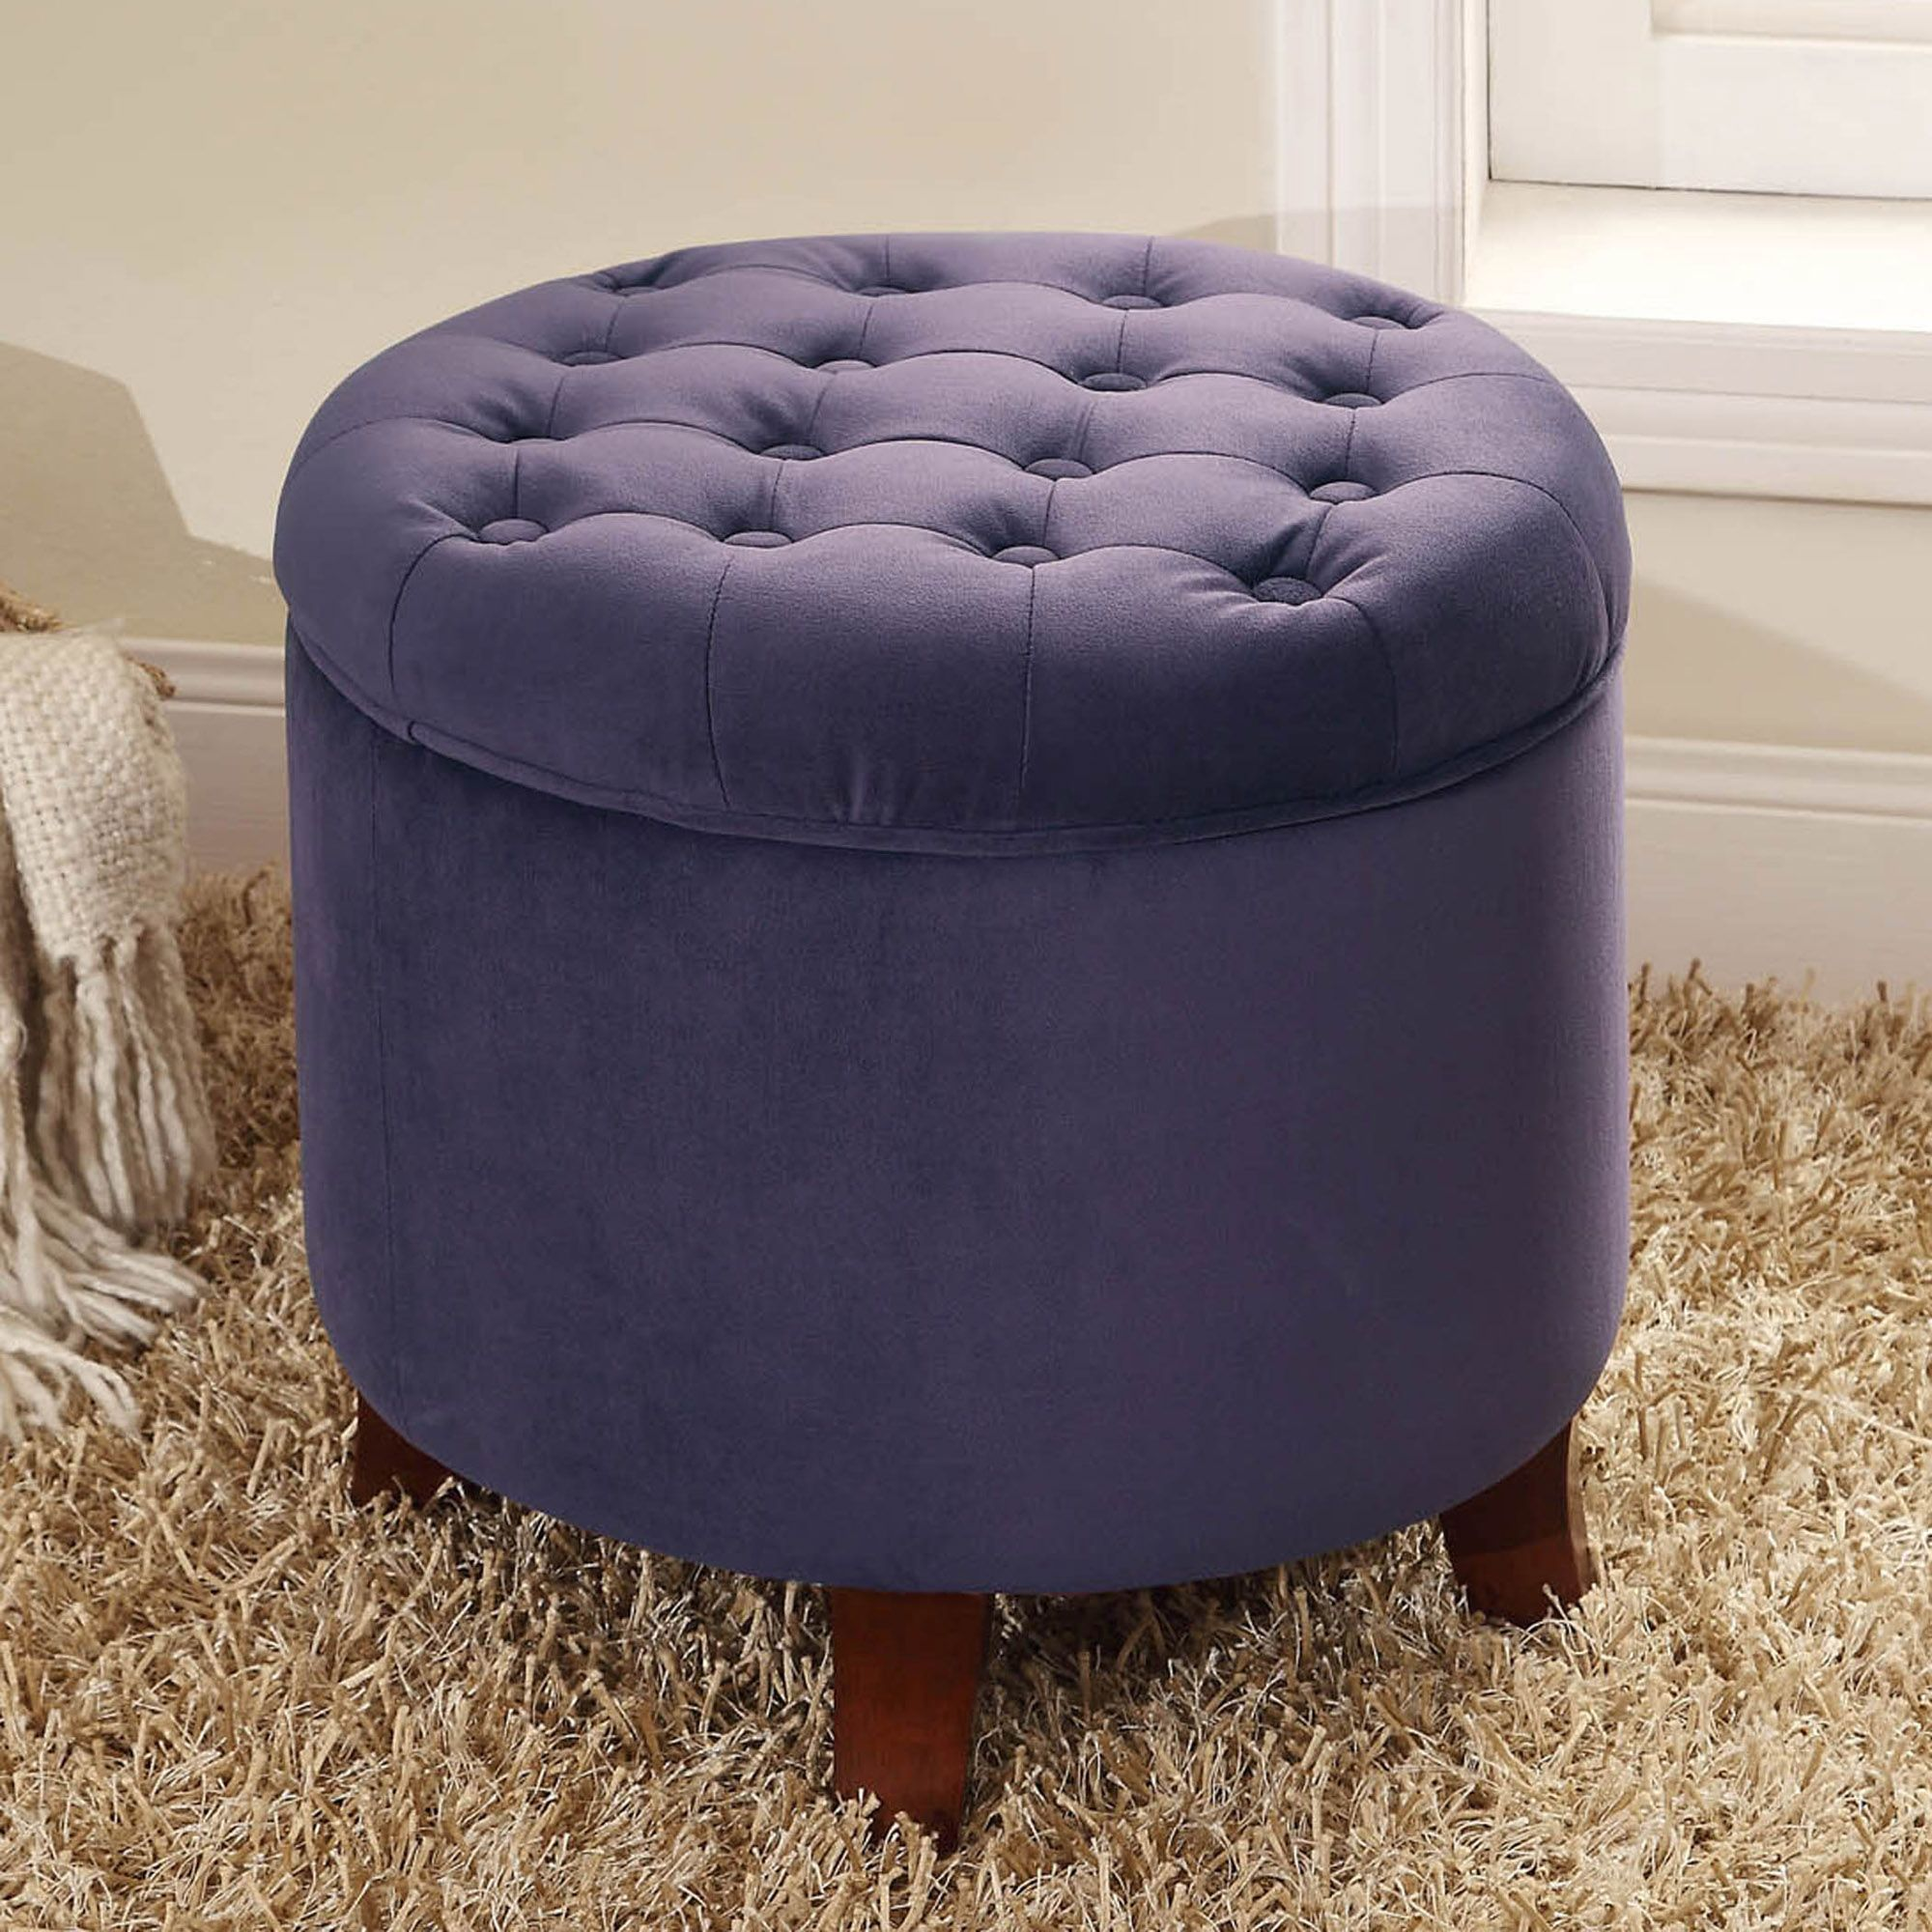 Velvet Tufted Round Ottoman With Storage With Images Round